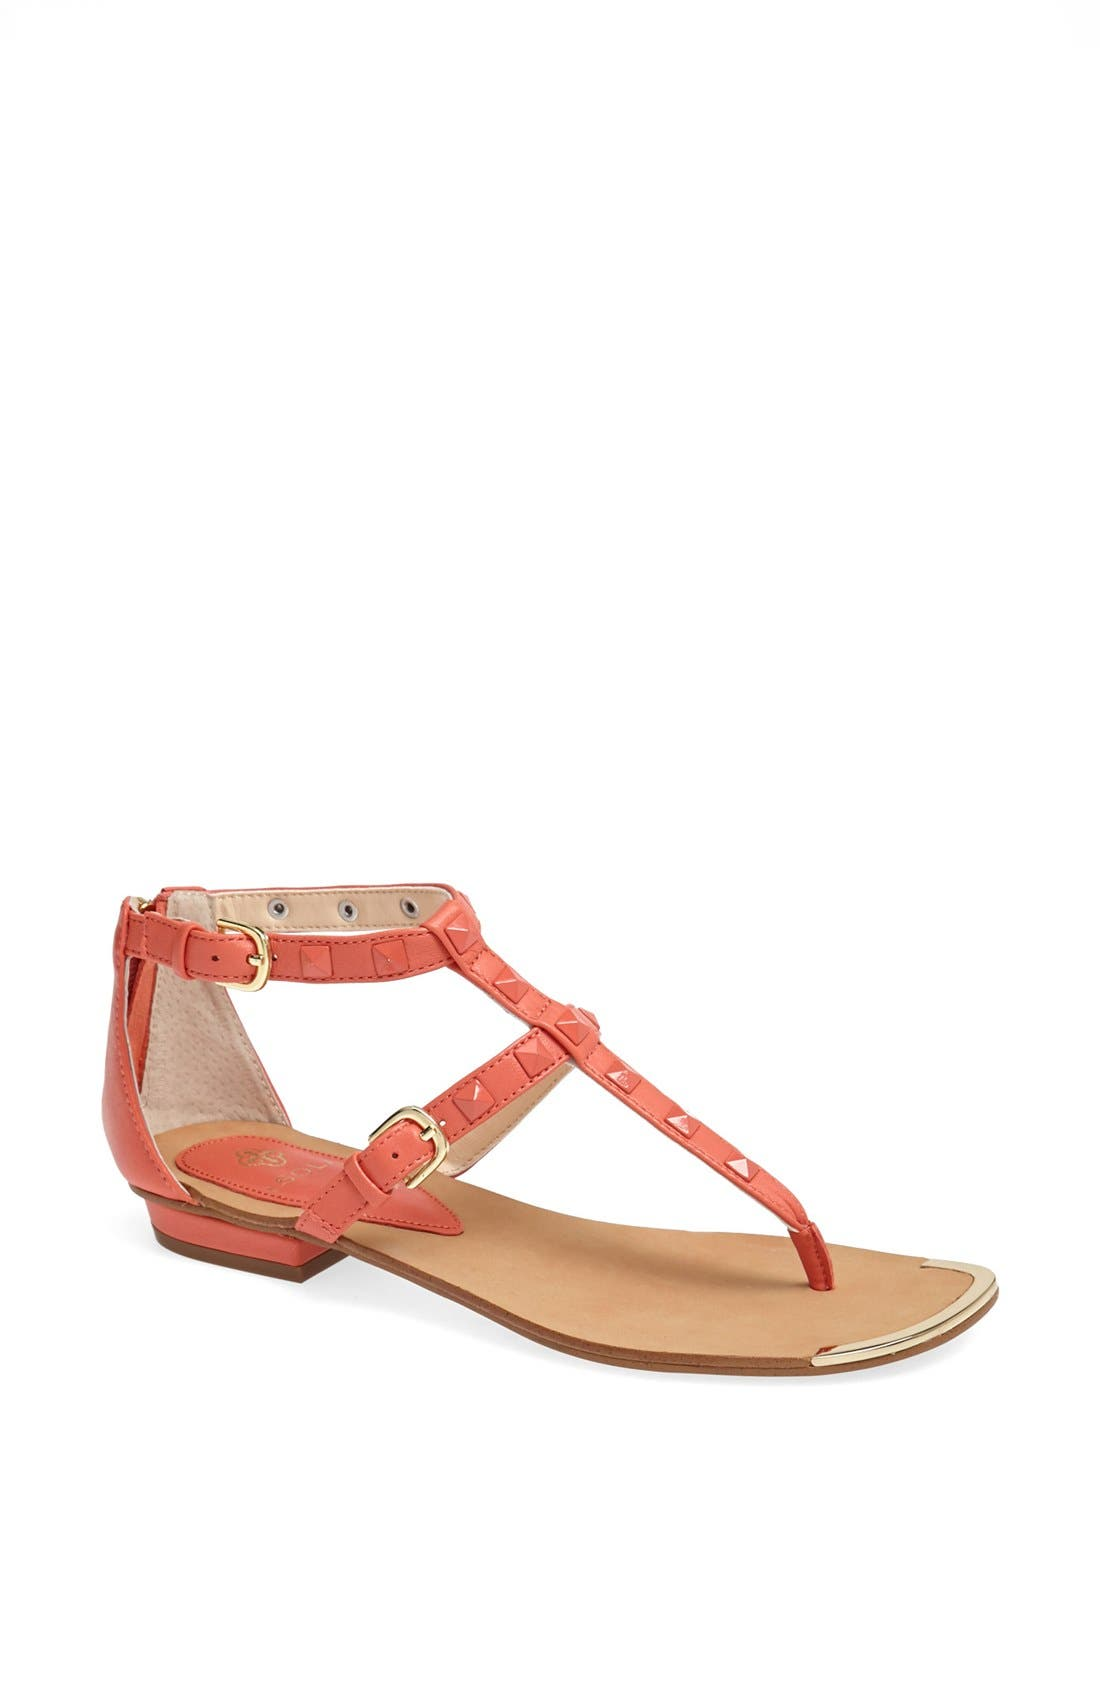 Alternate Image 1 Selected - Isolá 'Adie' Studded Leather Thong Sandal